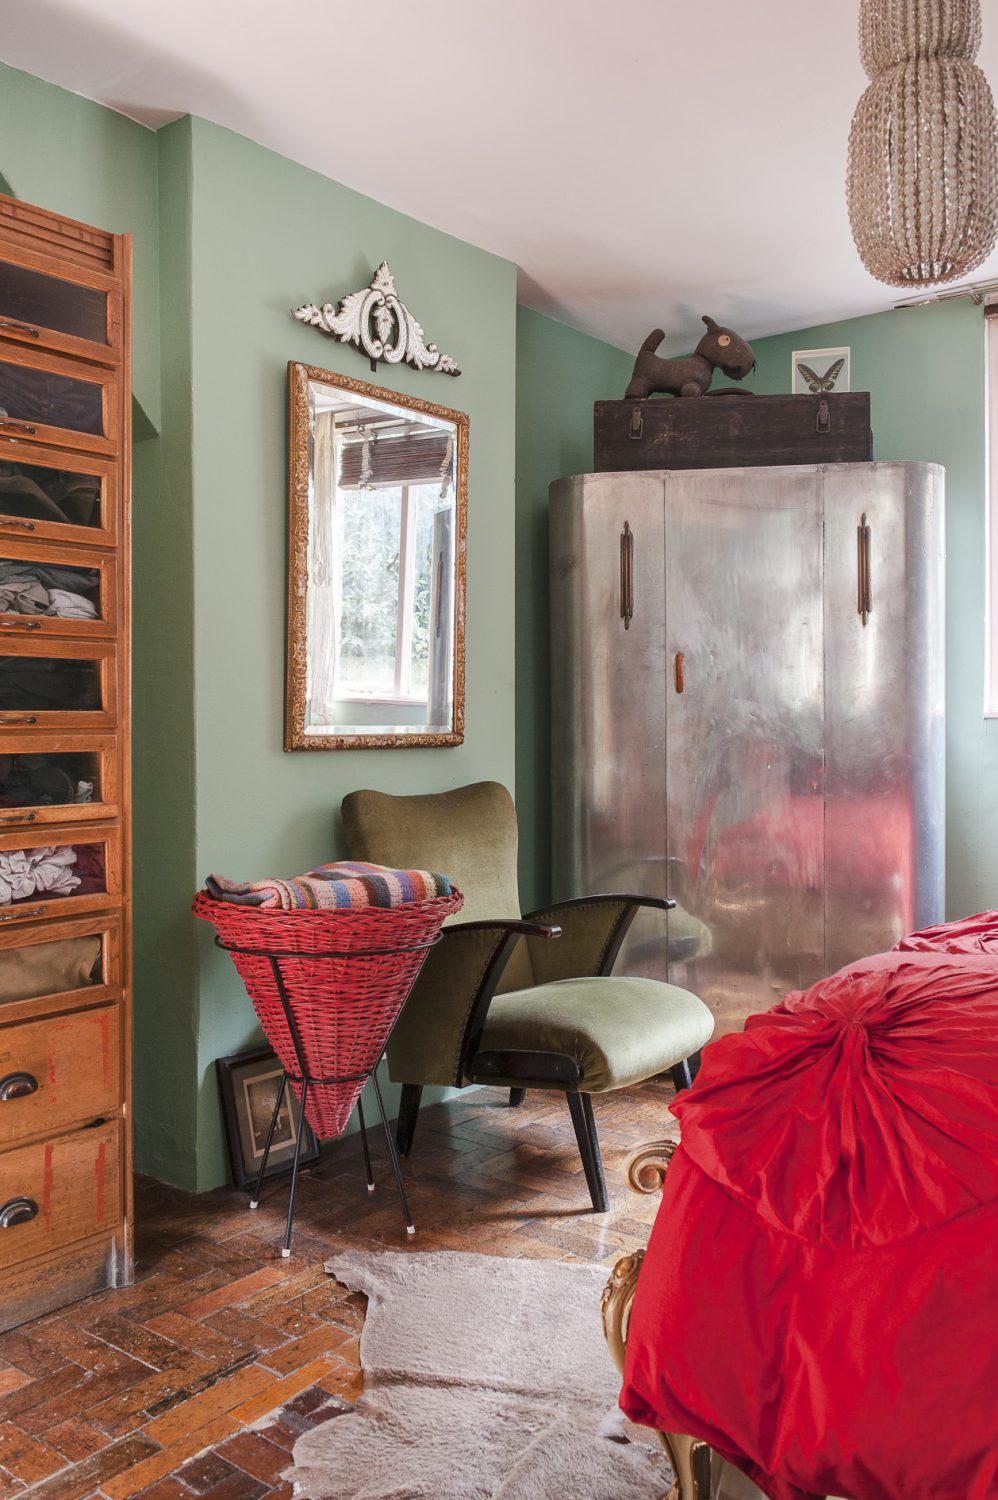 In one corner stands a Deco-style aluminium wardrobe. A toy dog made from an army blanket by Jason's grandfather during the war sits on top. A 1960s conical French laundry basket stands next to an elegant green 1950s armchair